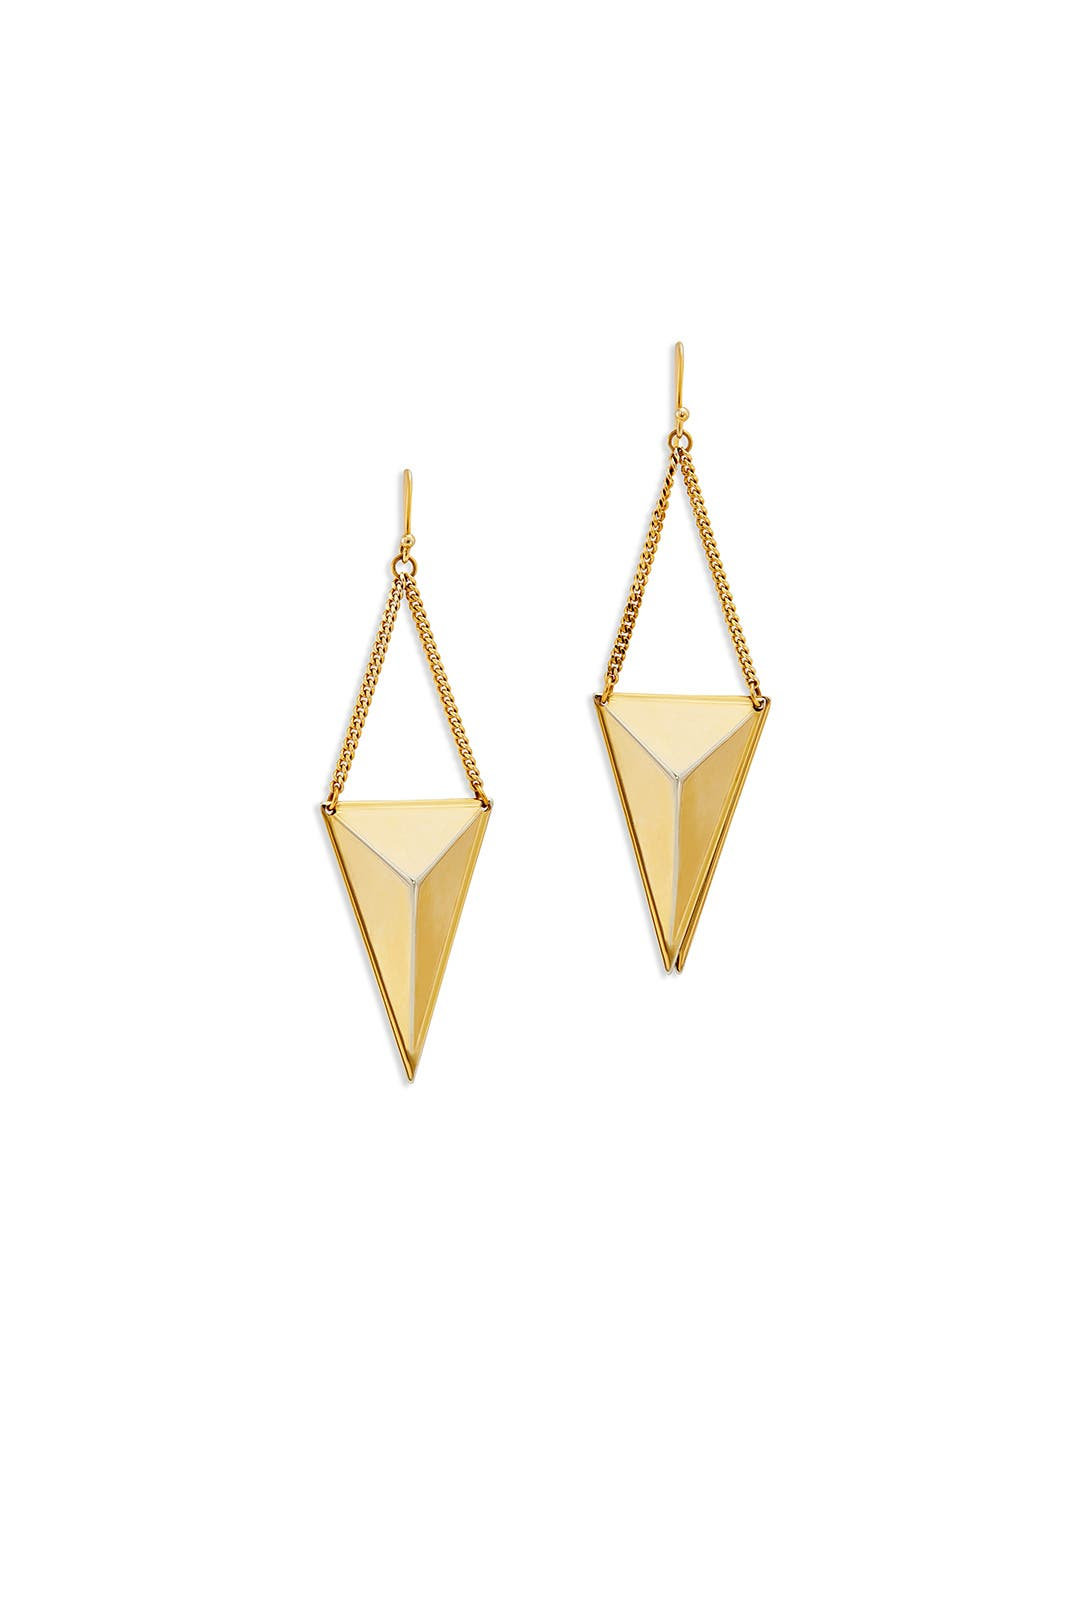 Gold Tetra Chain Earring by AV Max